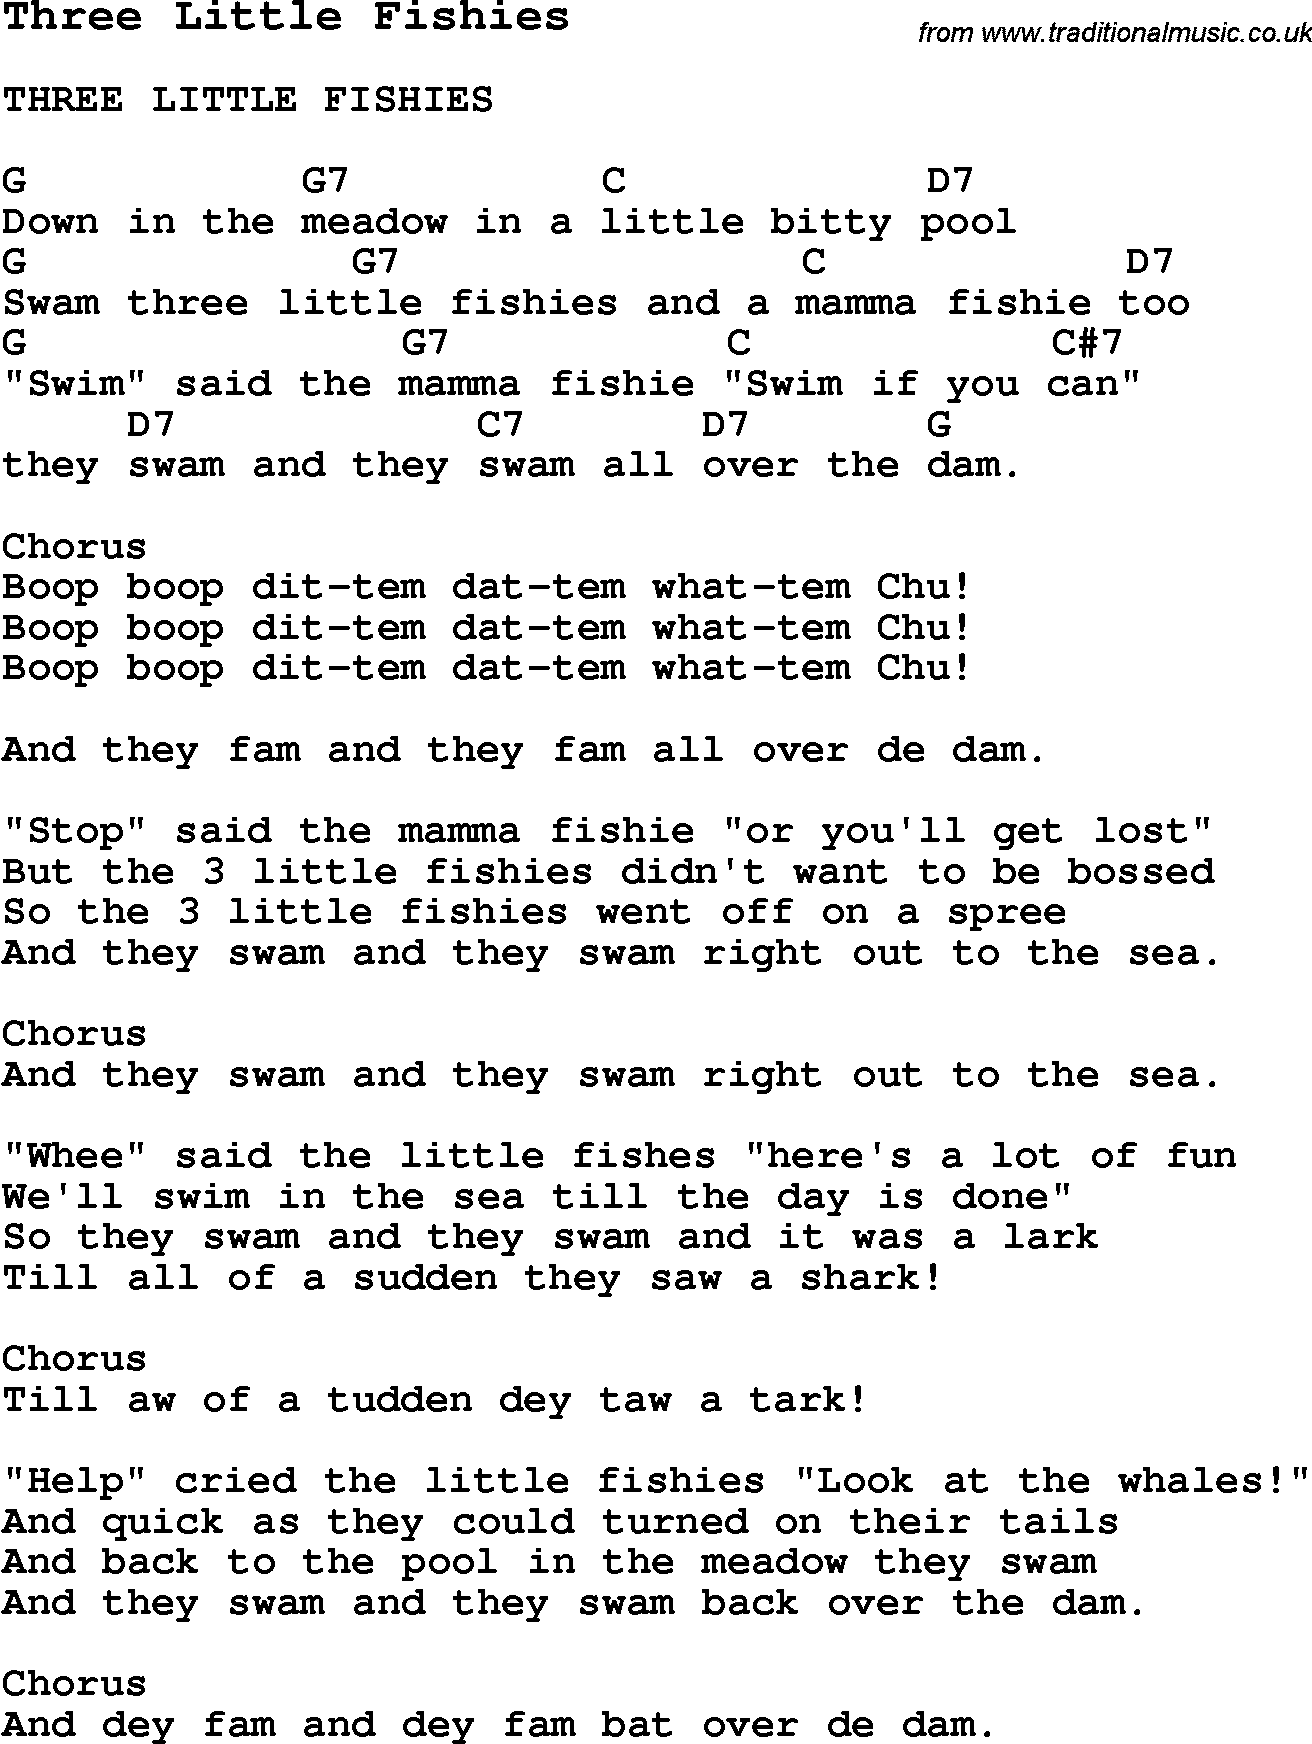 Summer camp song three little fishies with lyrics and chords for summer camp song three little fishies with lyrics and chords for ukulele guitar hexwebz Image collections